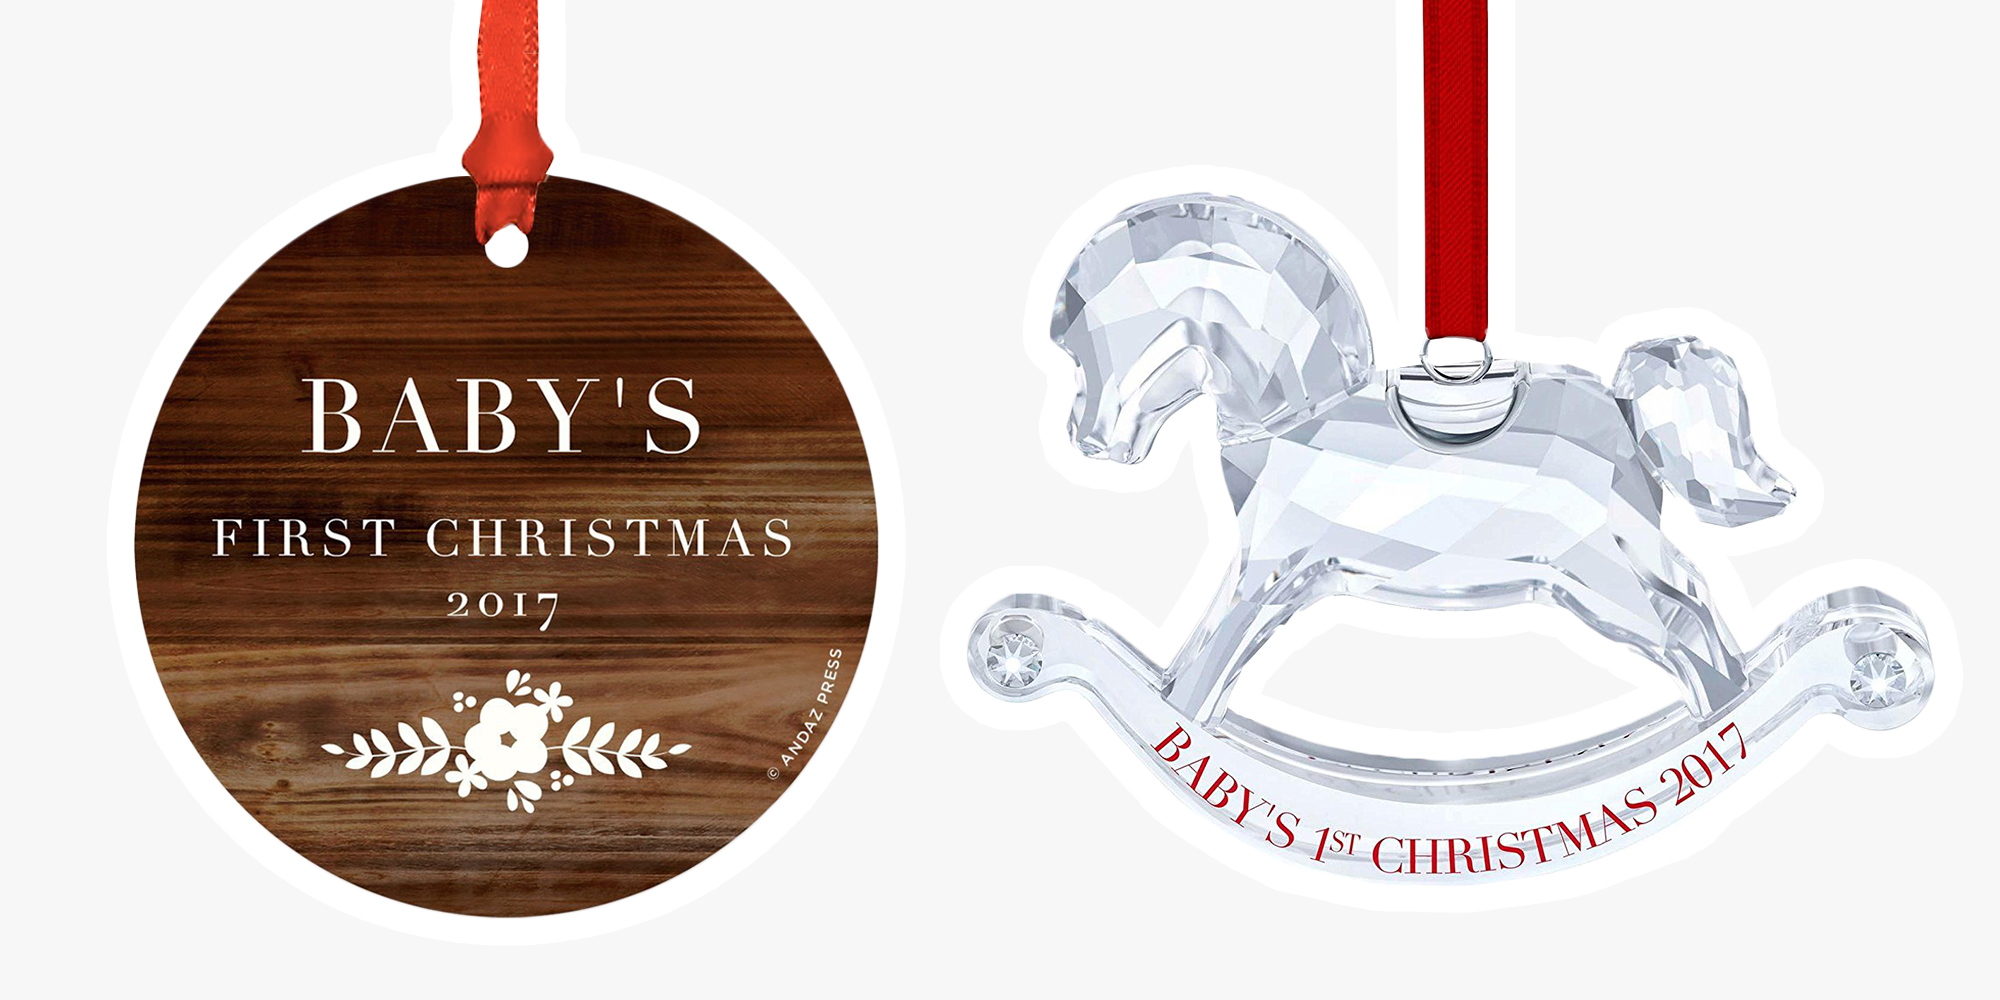 13 Best Babys First Christmas Ornament Ideas For 2018